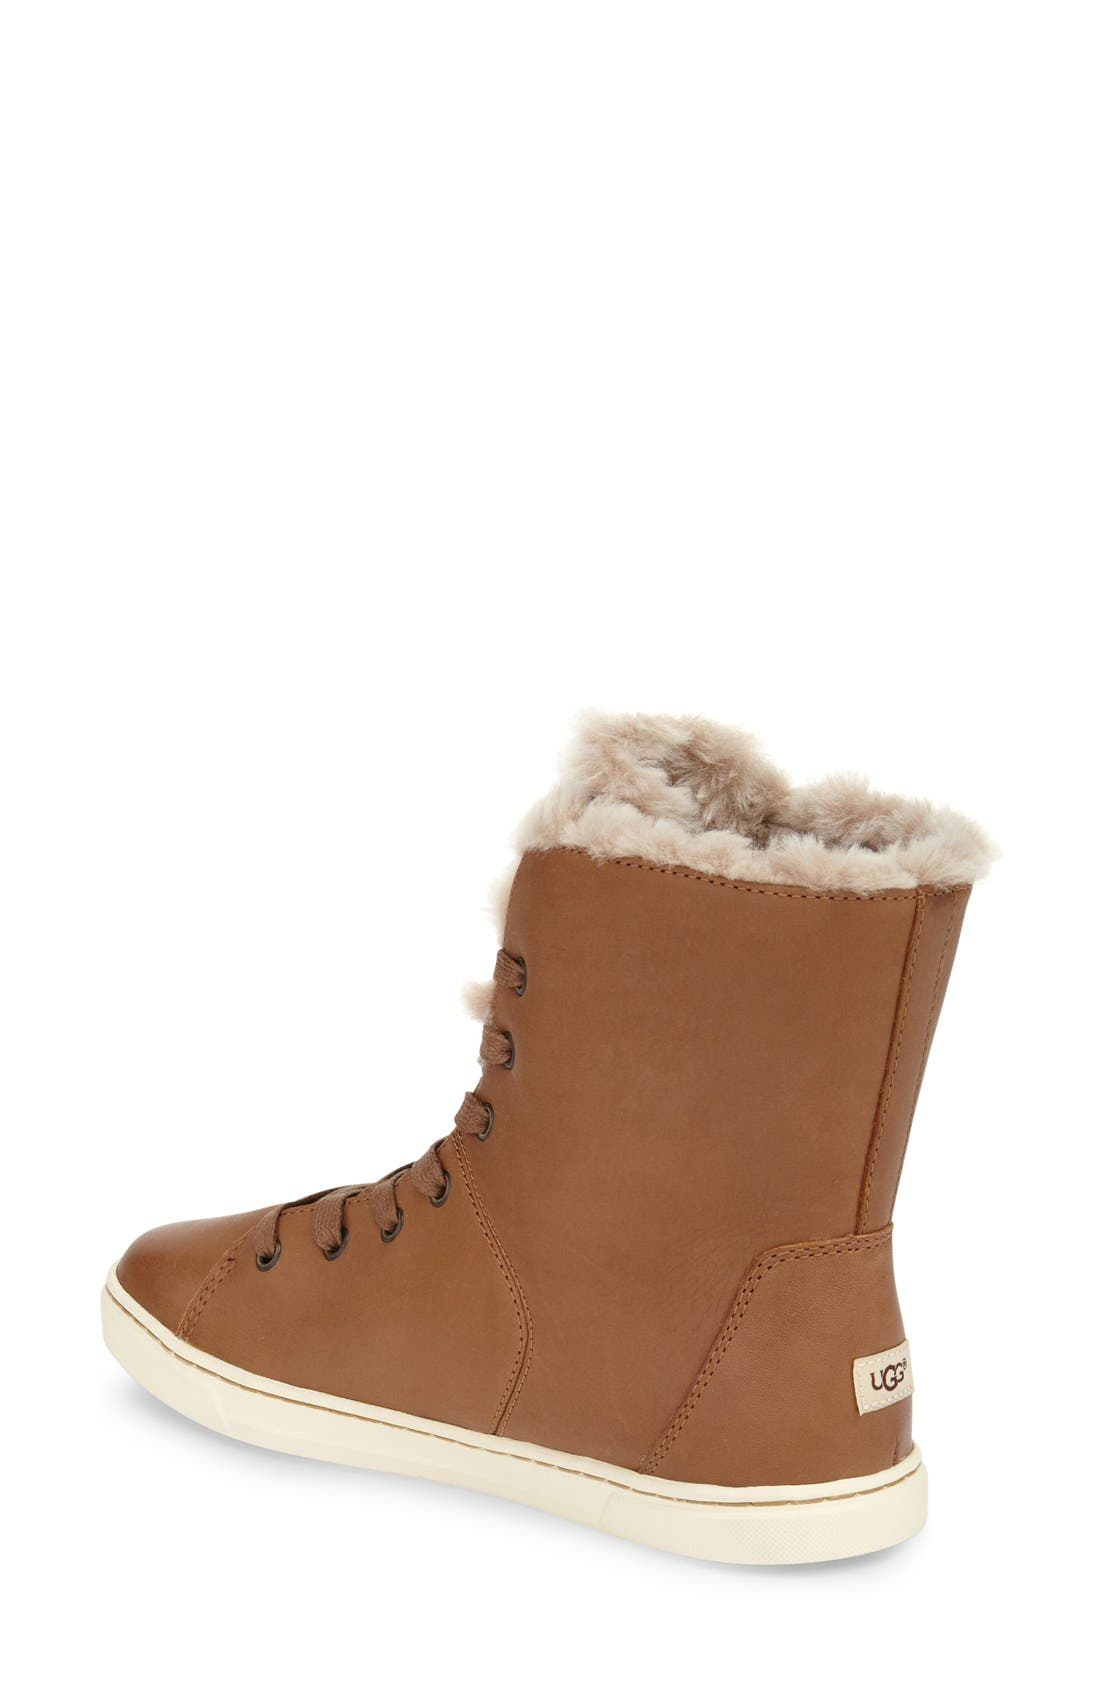 Alternate Image 2  - UGG® 'Croft Luxe' Genuine Shearling High Top Sneaker (Women)